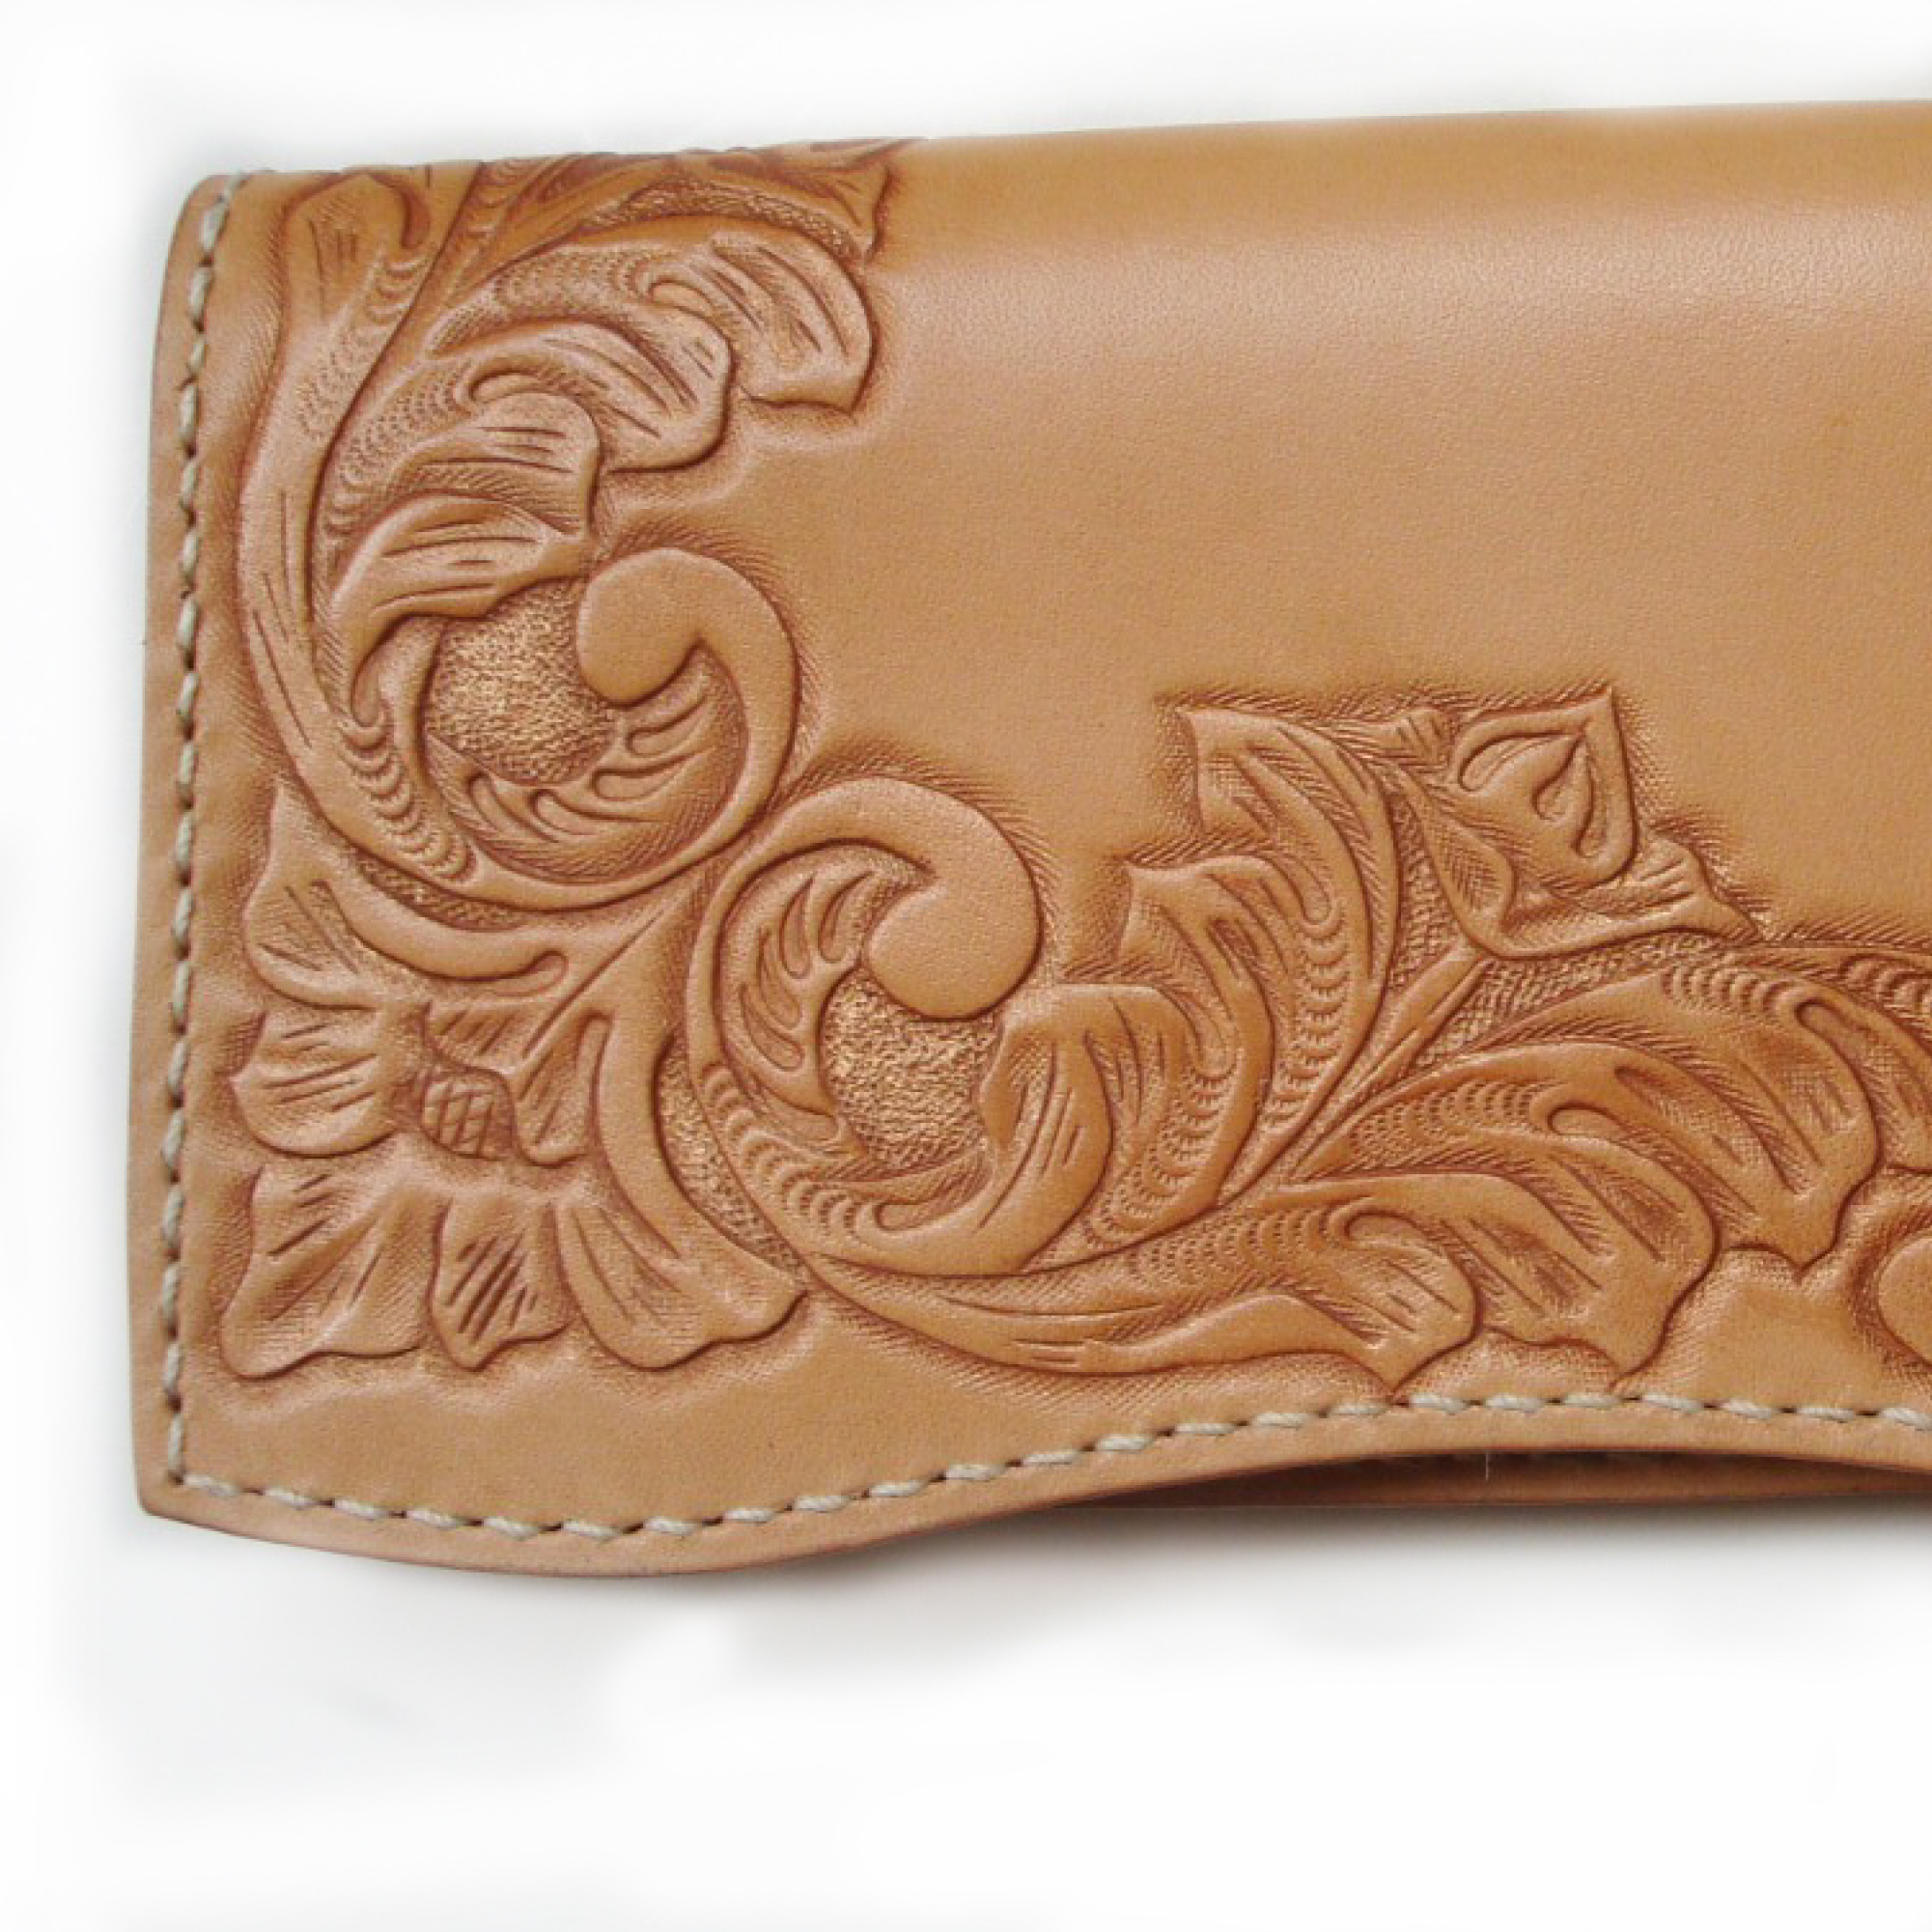 Leather carving tooling